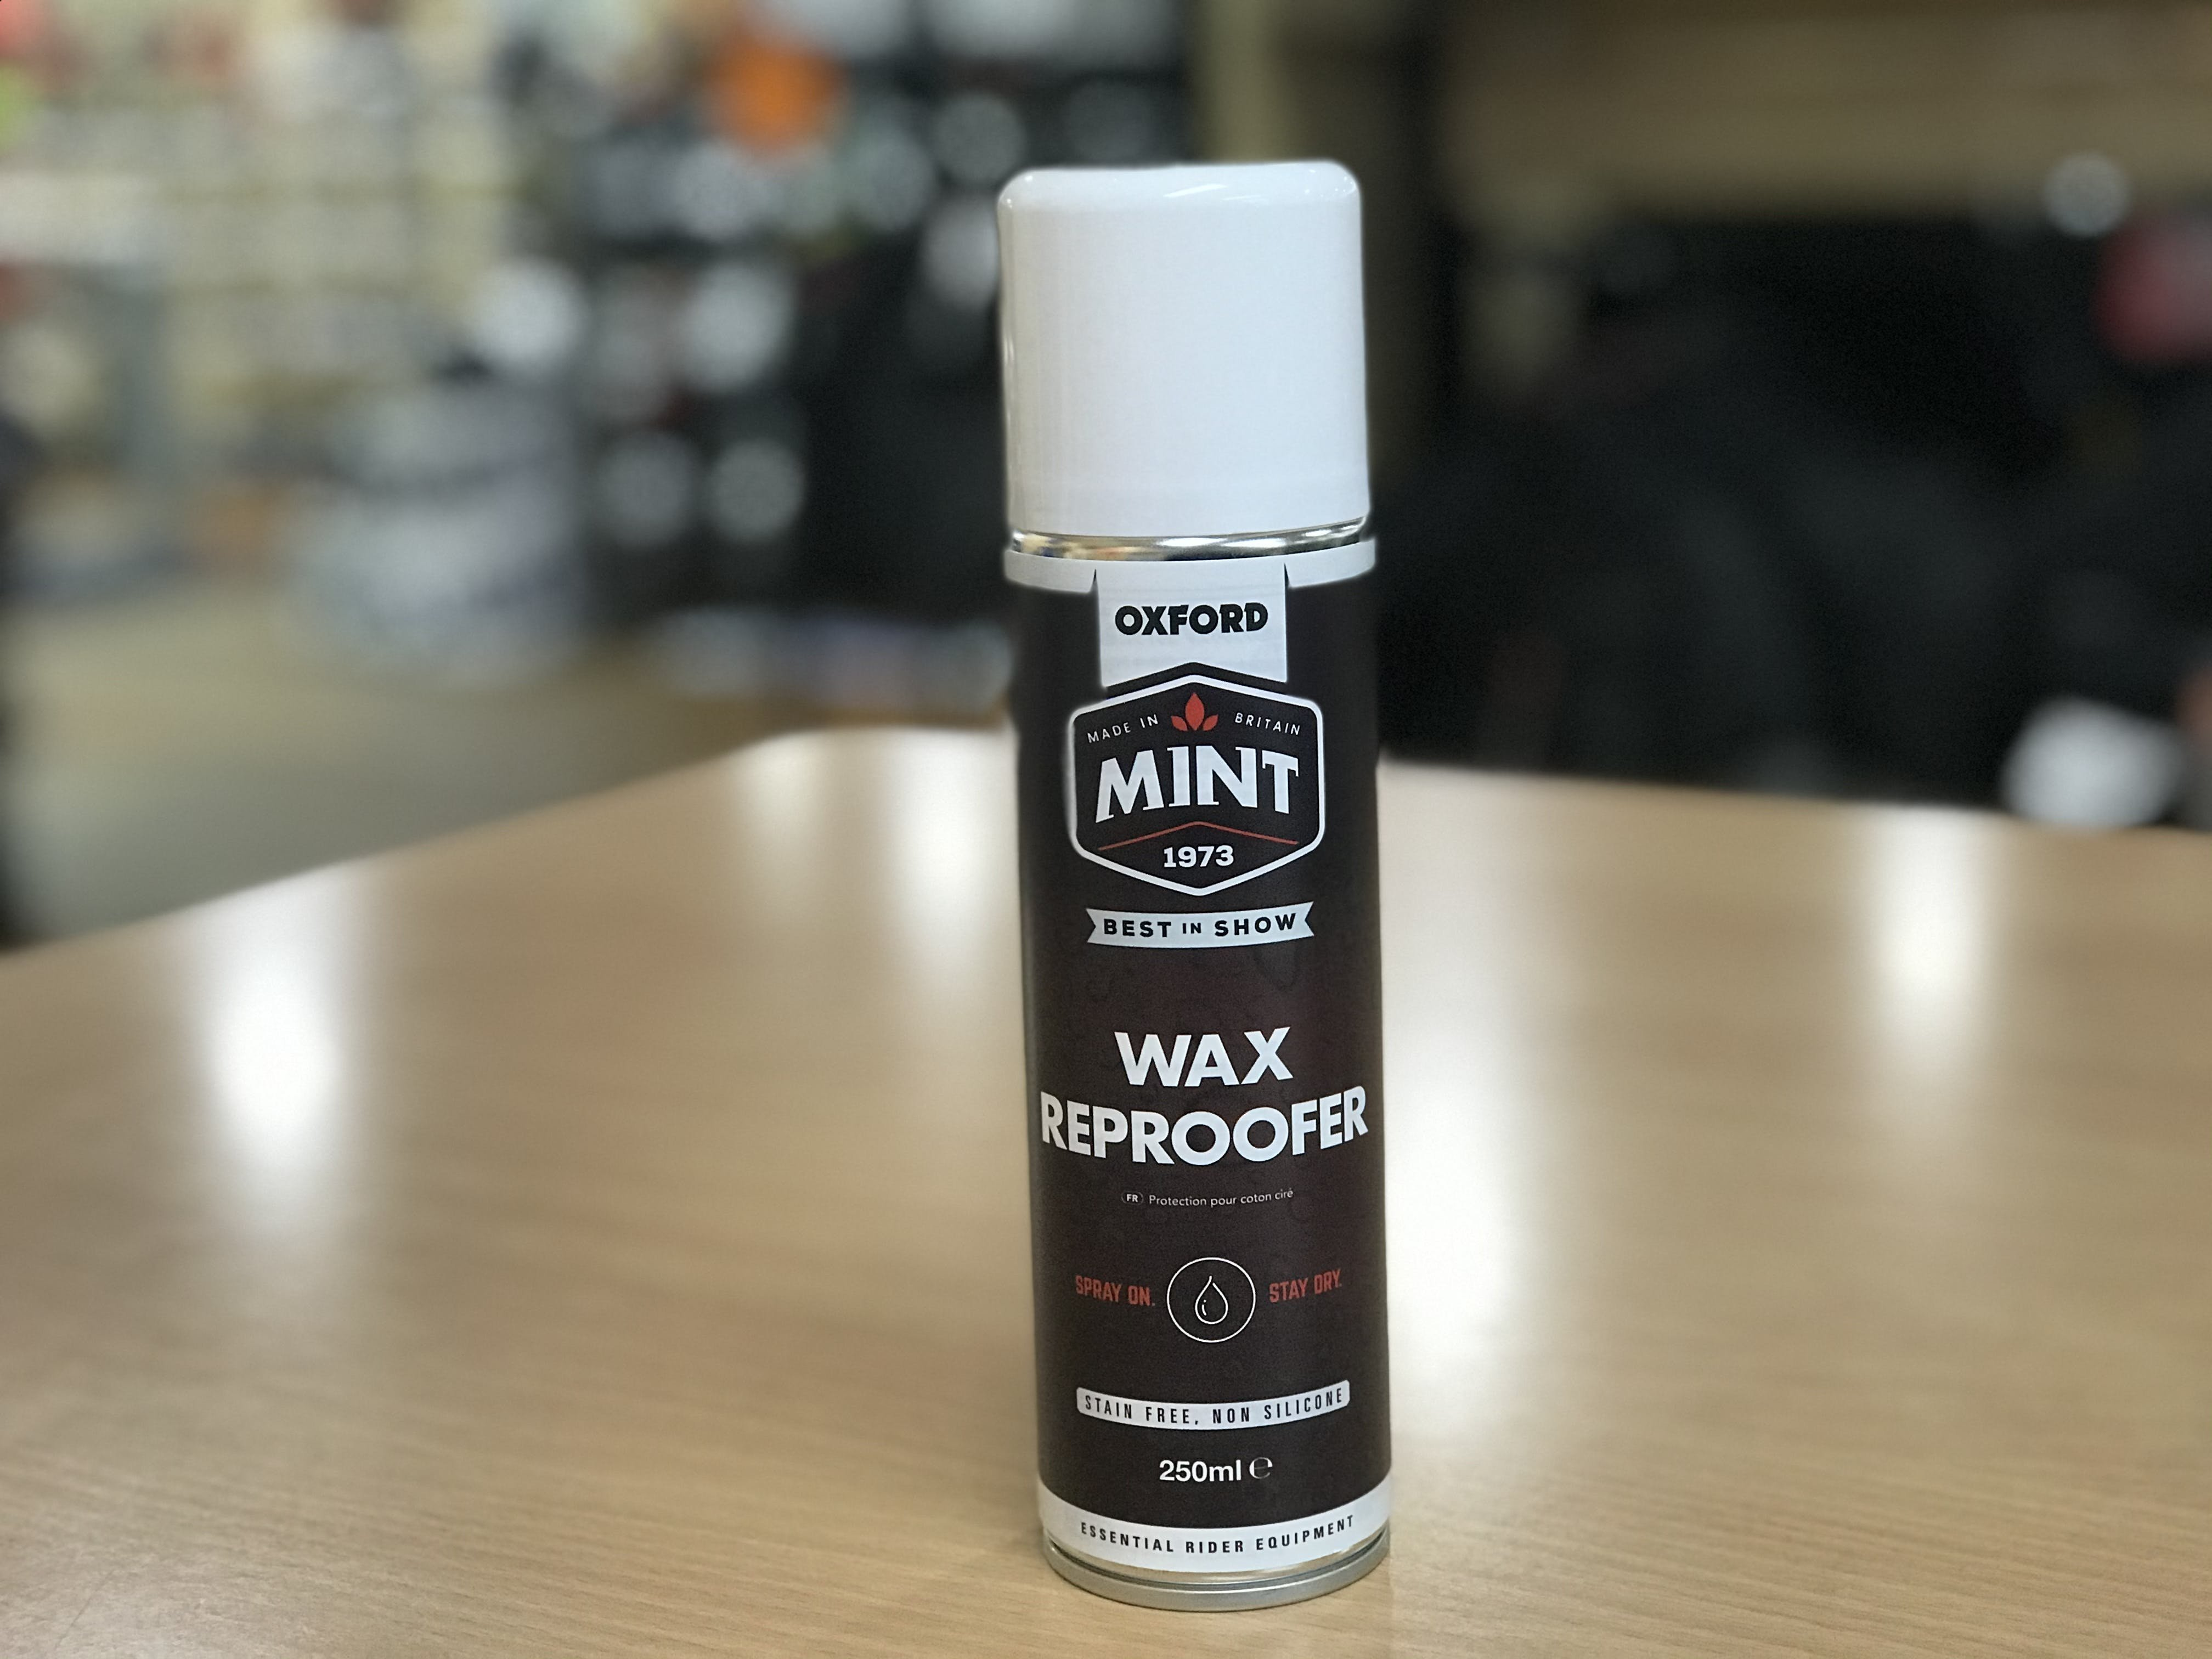 A can of Mint Wax reproofed spray